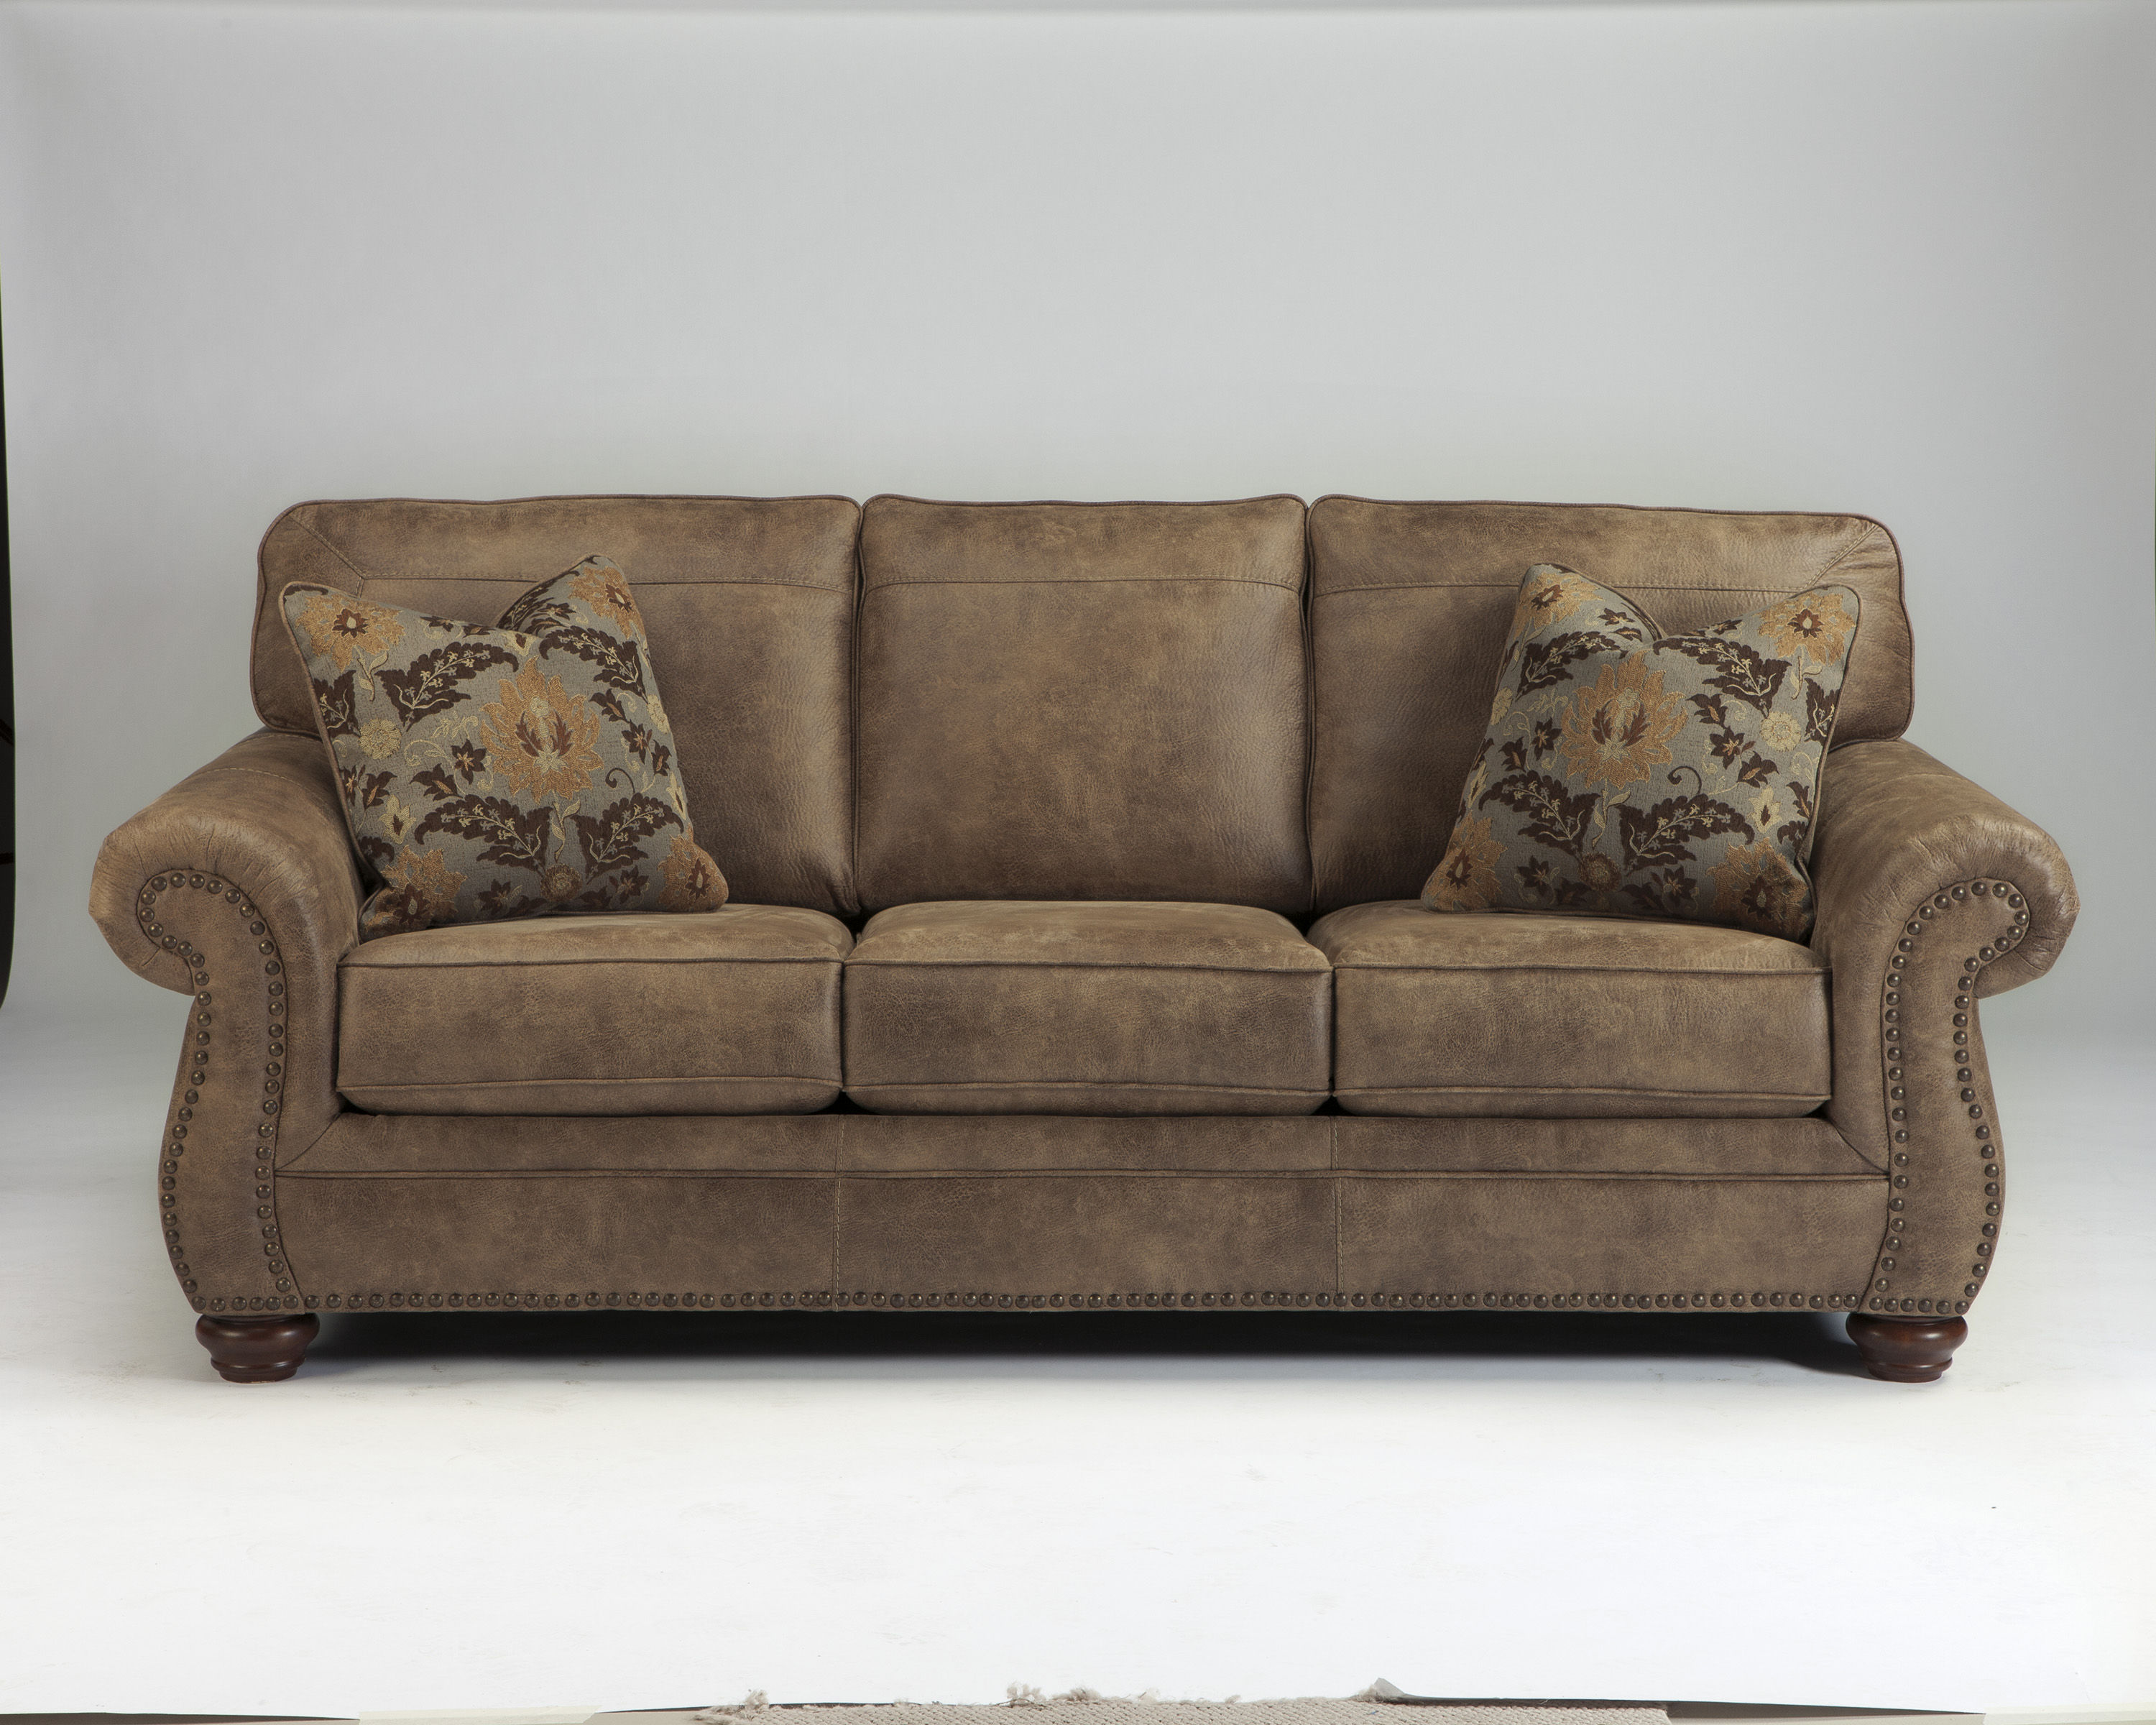 Ashley Furniture Larkinhurst Sofa The Classy Home